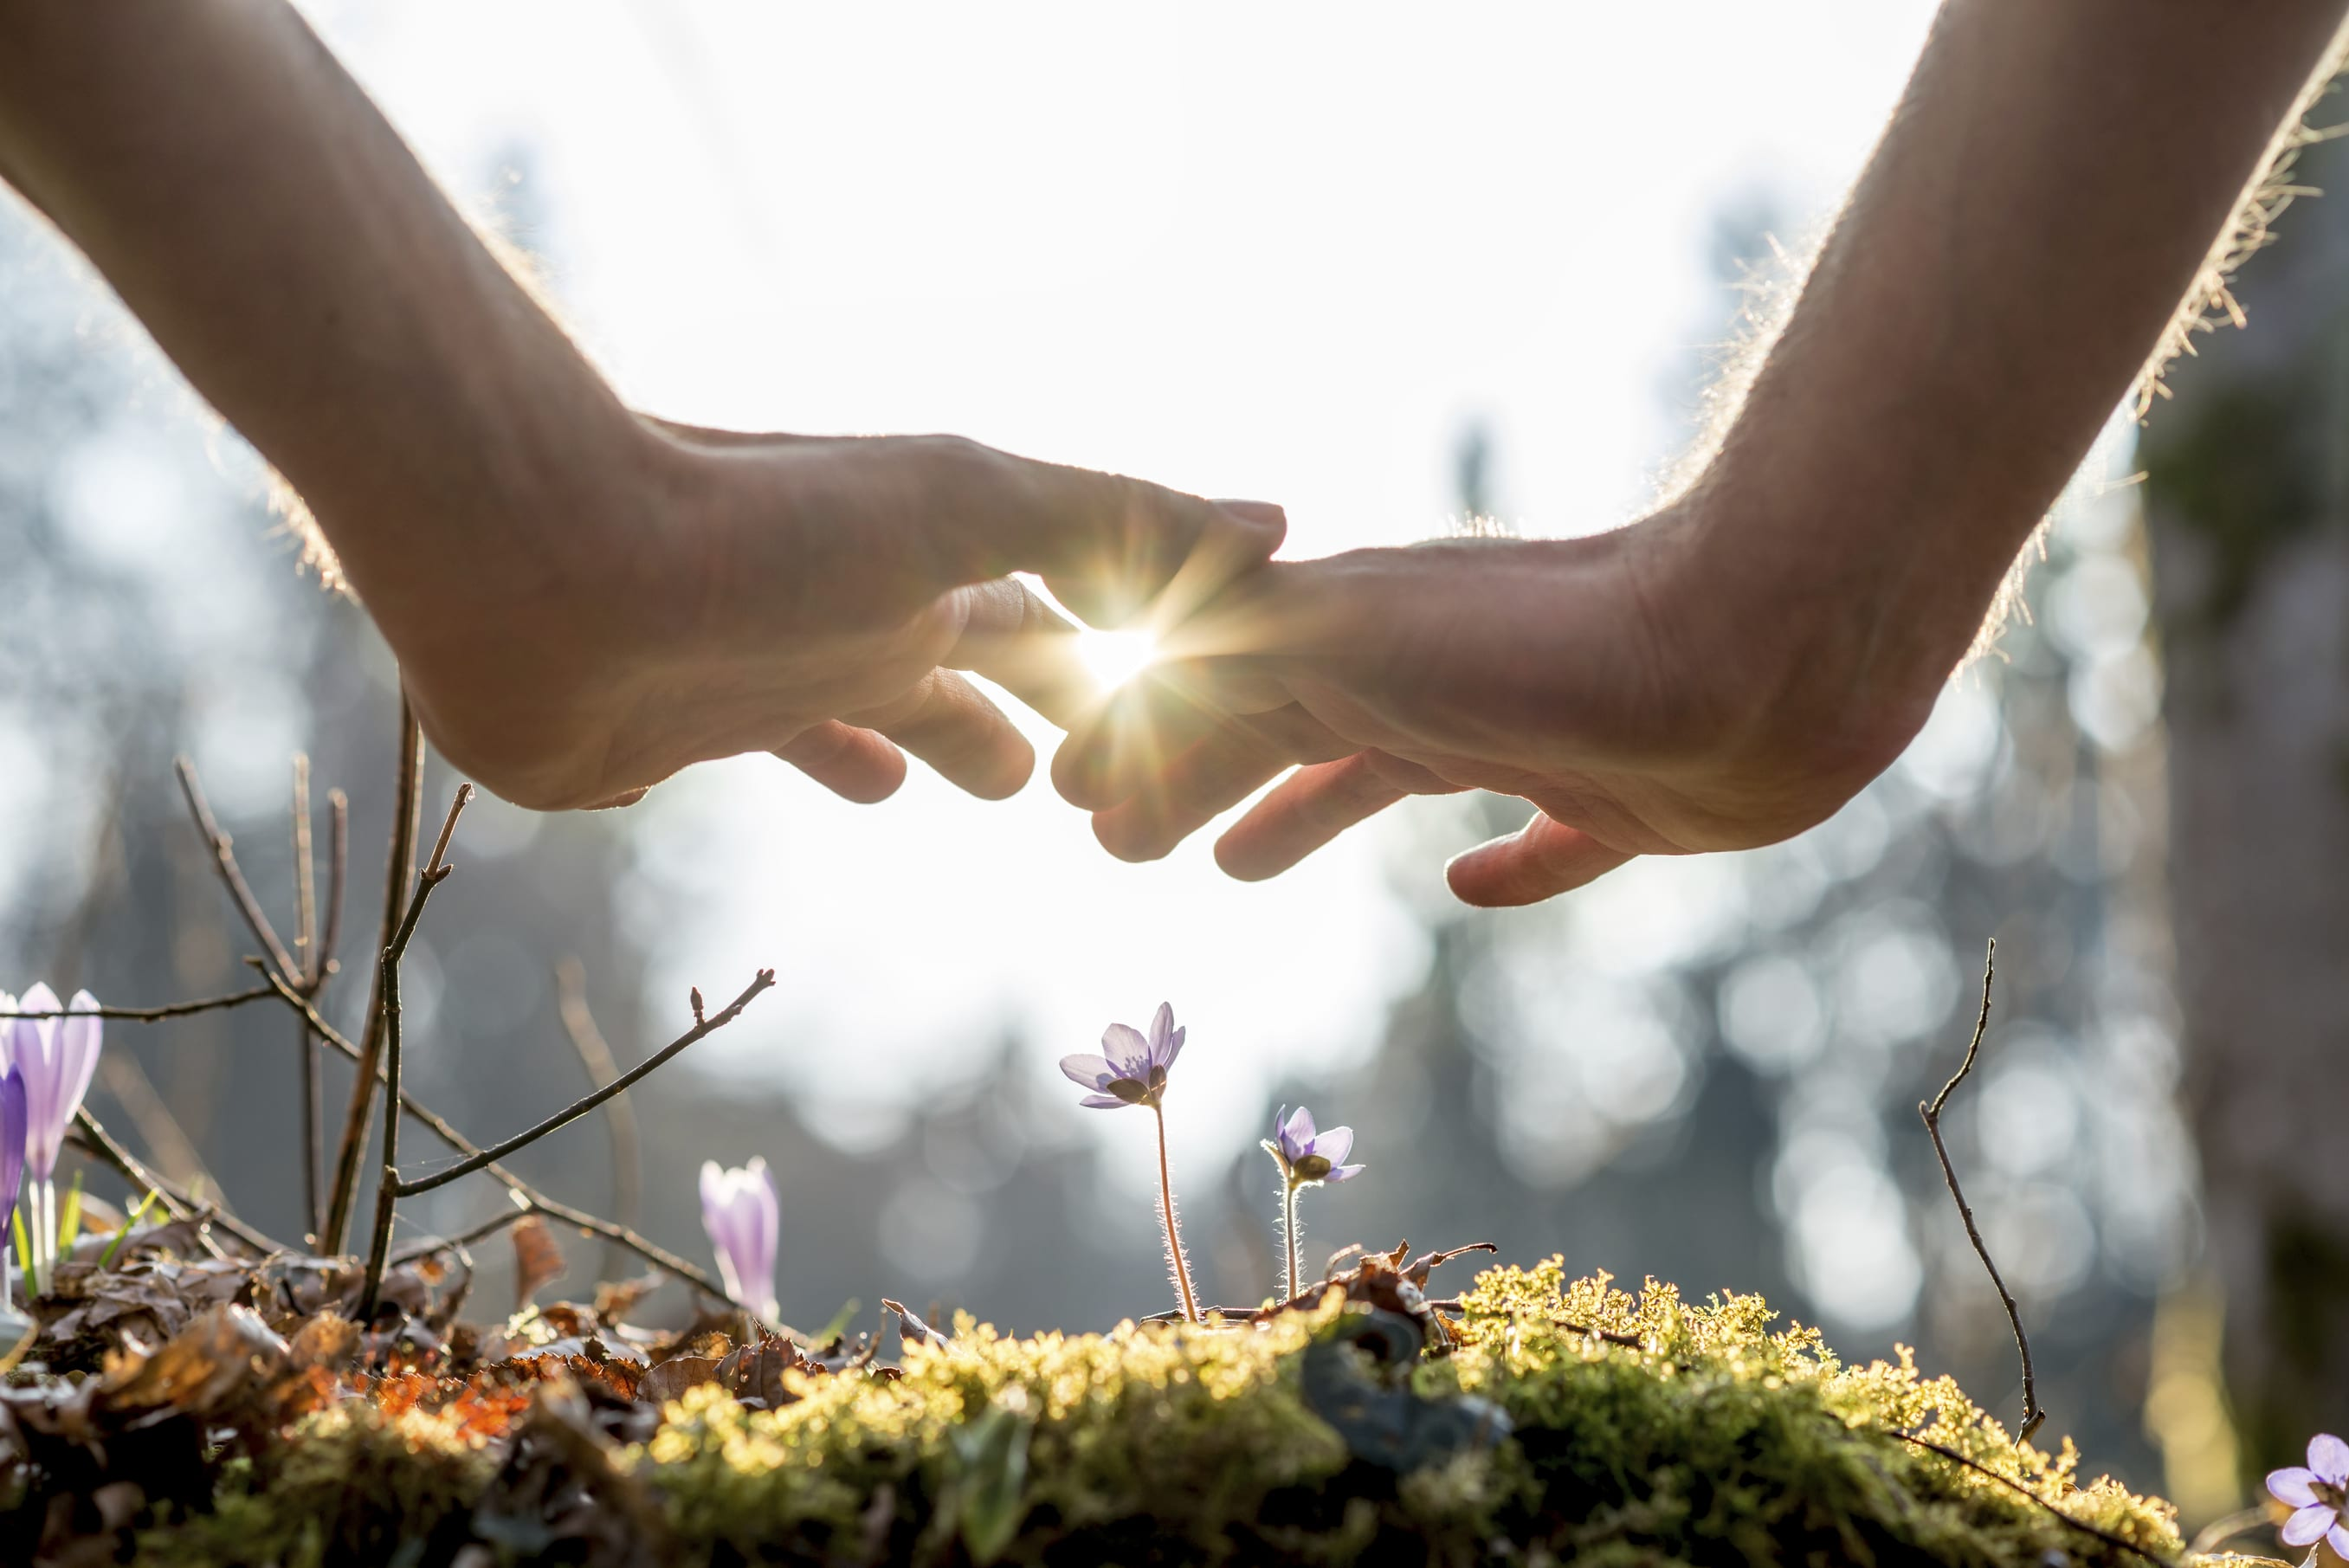 Finding Light in the Darkness: Tapping Our Strengths in Difficult Times